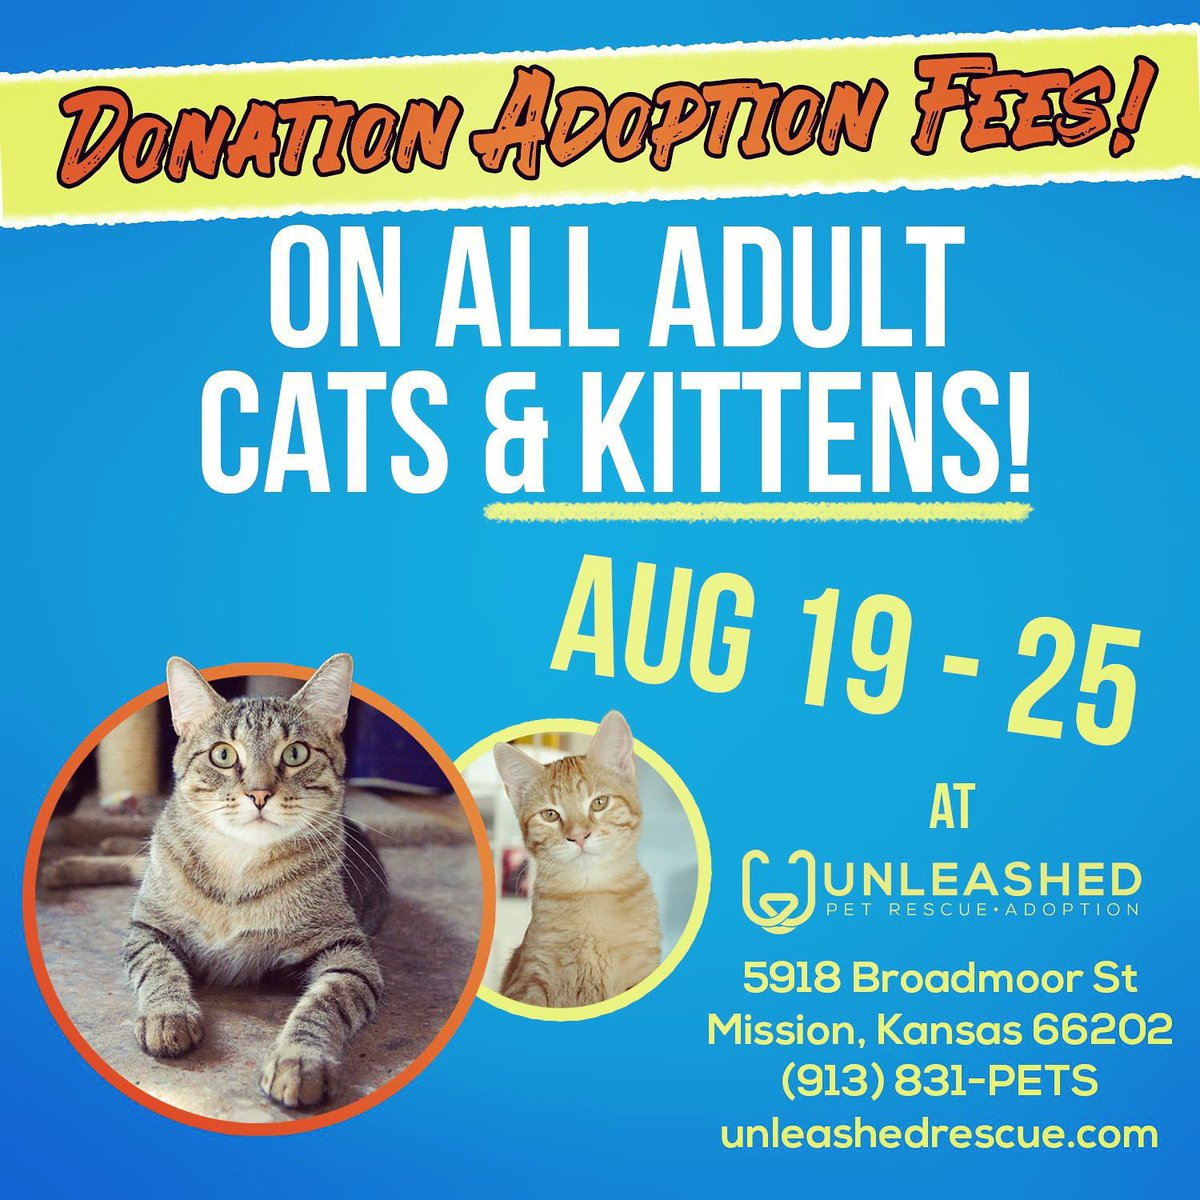 Unleashed Pet Rescue (@UnleashedRescue) | Twitter